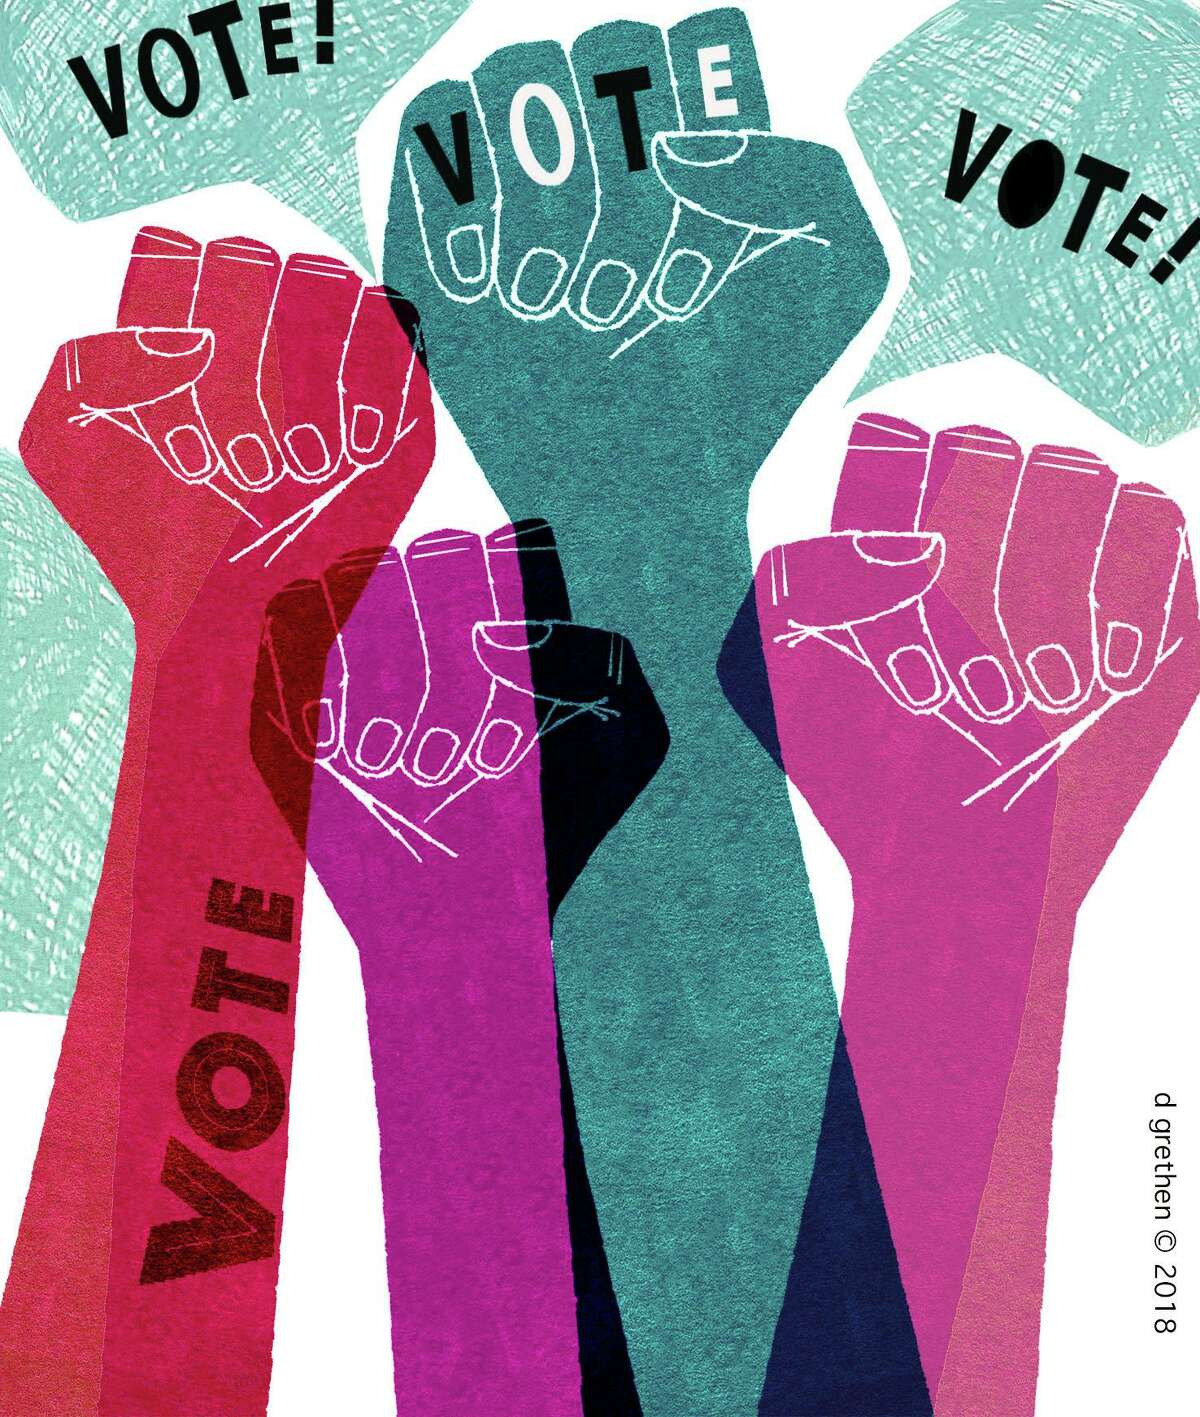 This artwork by Donna Grethen refers to the firing up the womens vote, following the confirmation of Brett Kavanaugh to the Supreme Court.